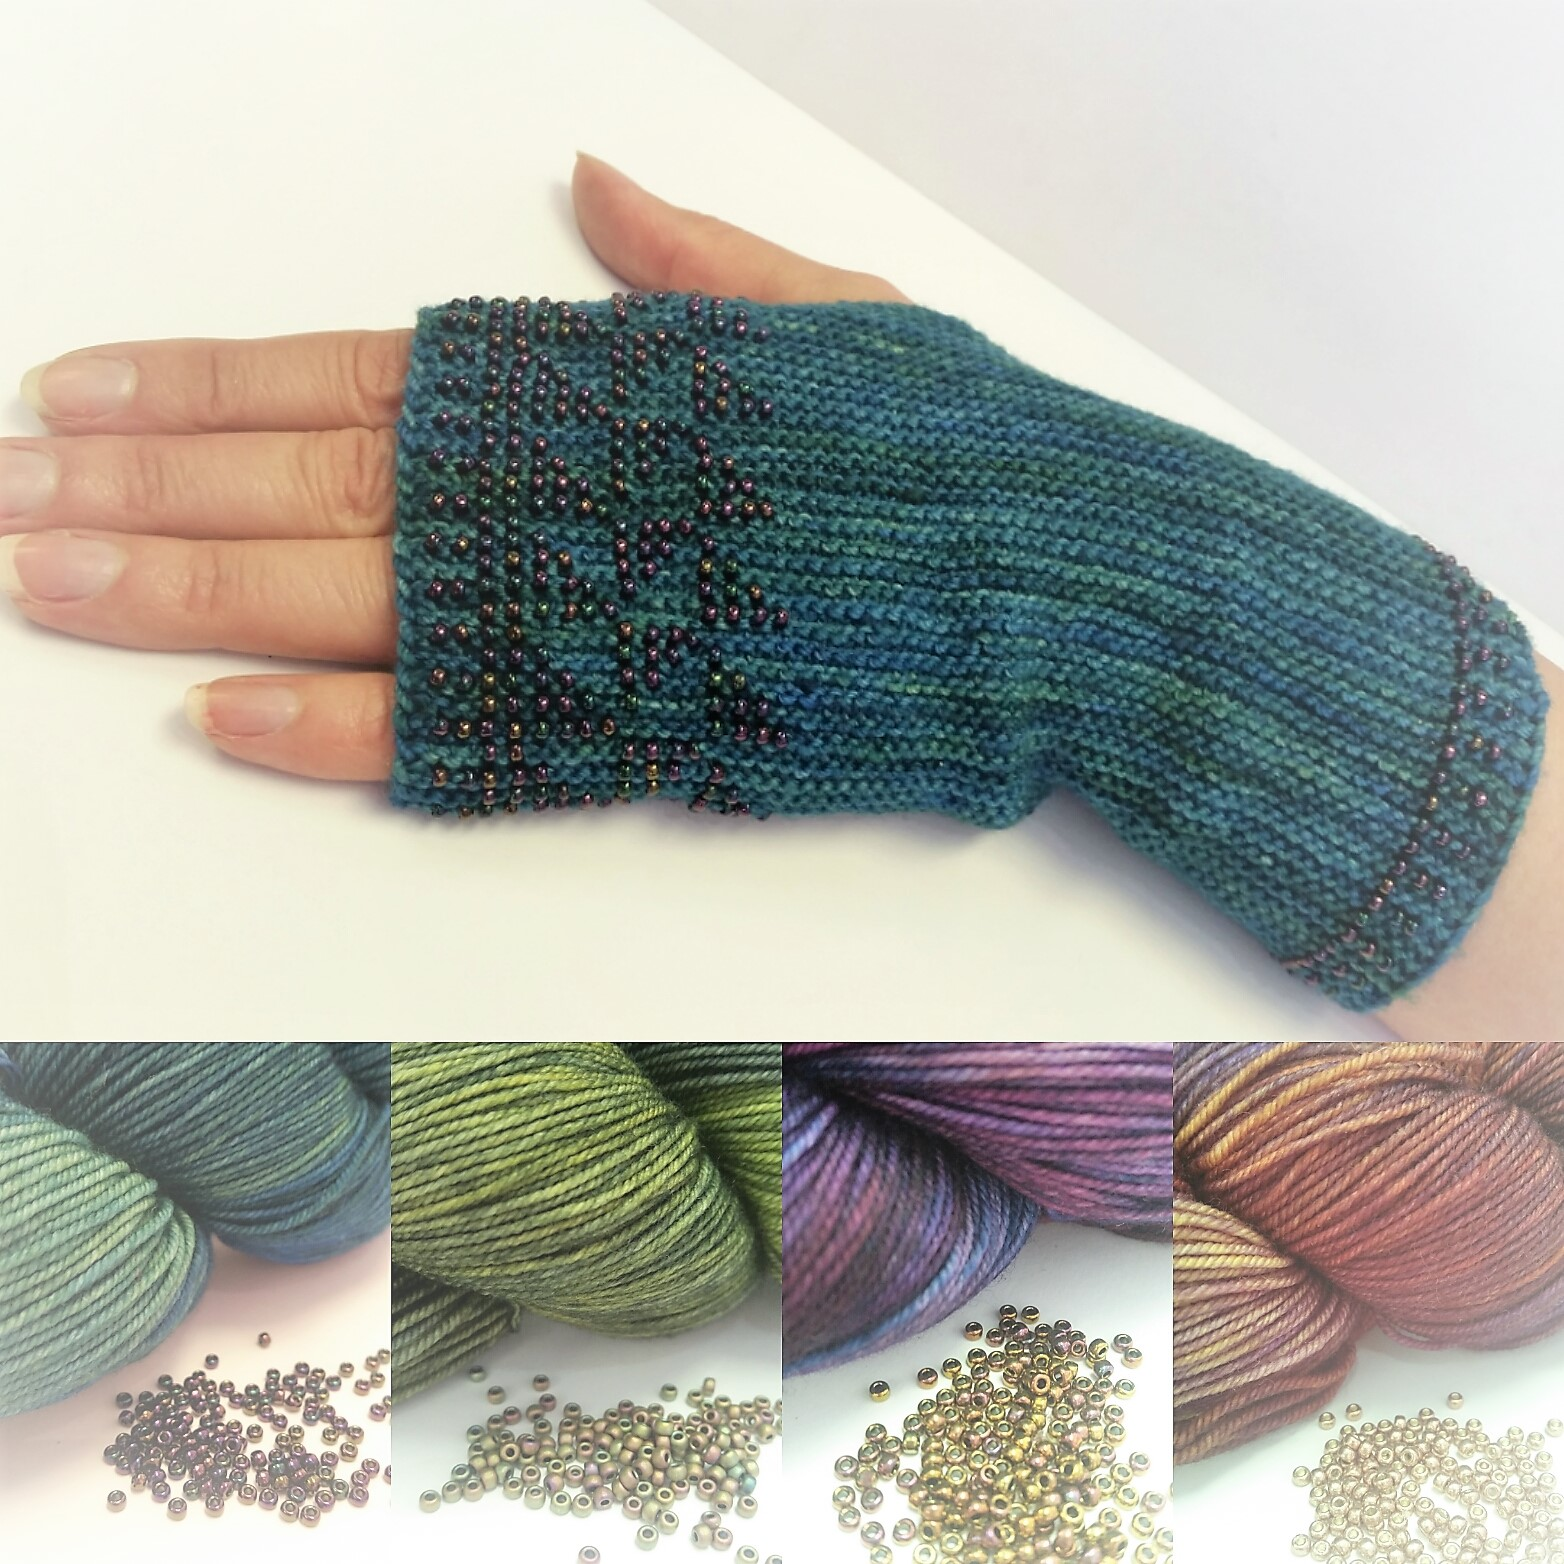 New Knitting kits Beaded Fingerless gloves launched